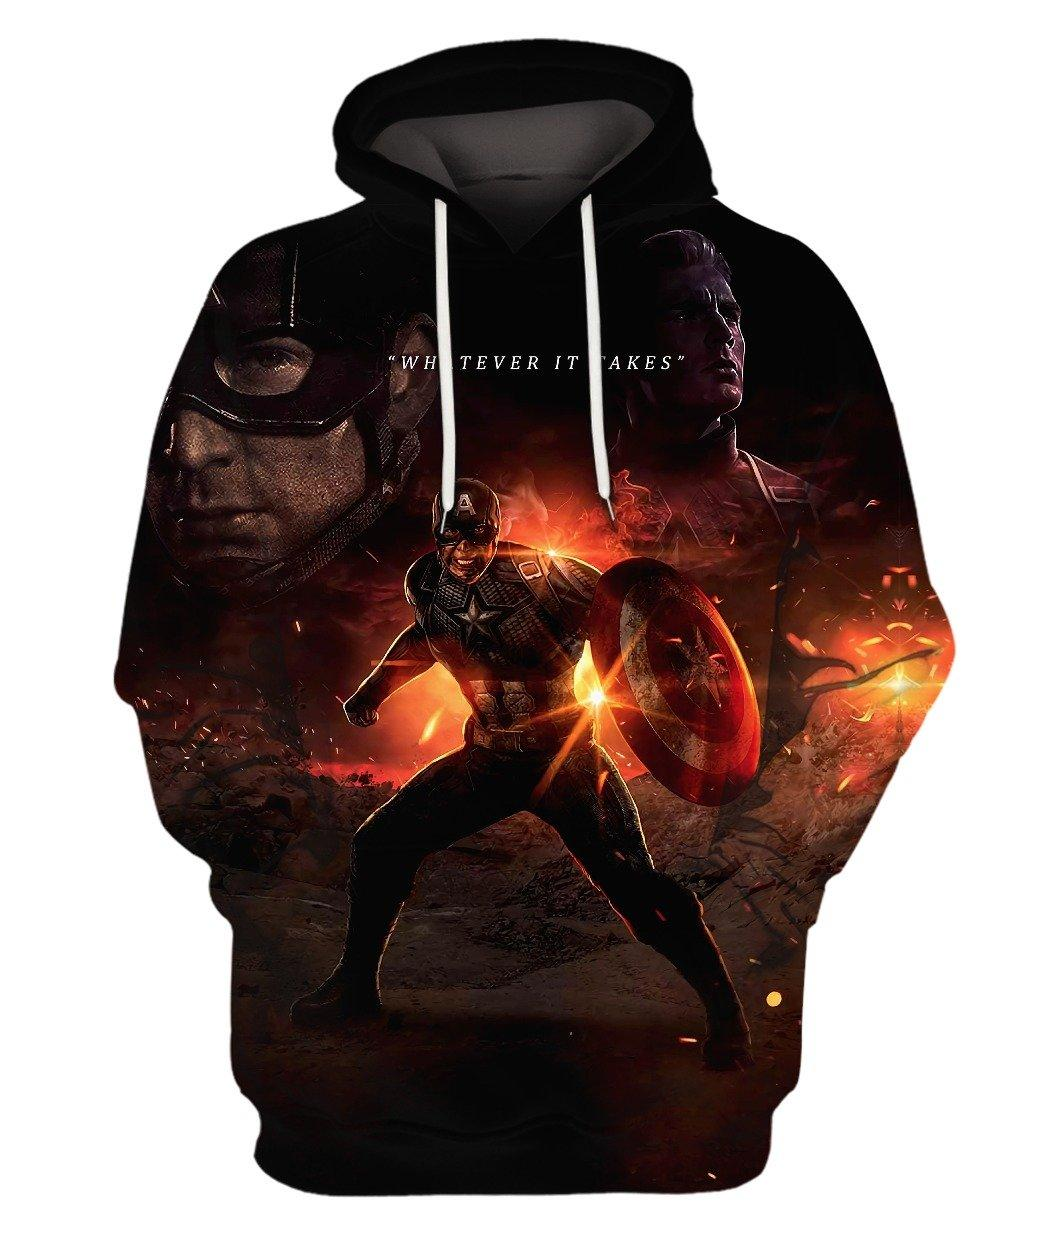 Avenger Endgame Captain America Full 3d 3d Graphic Printed Tshirt Hoodie Up To 5xl